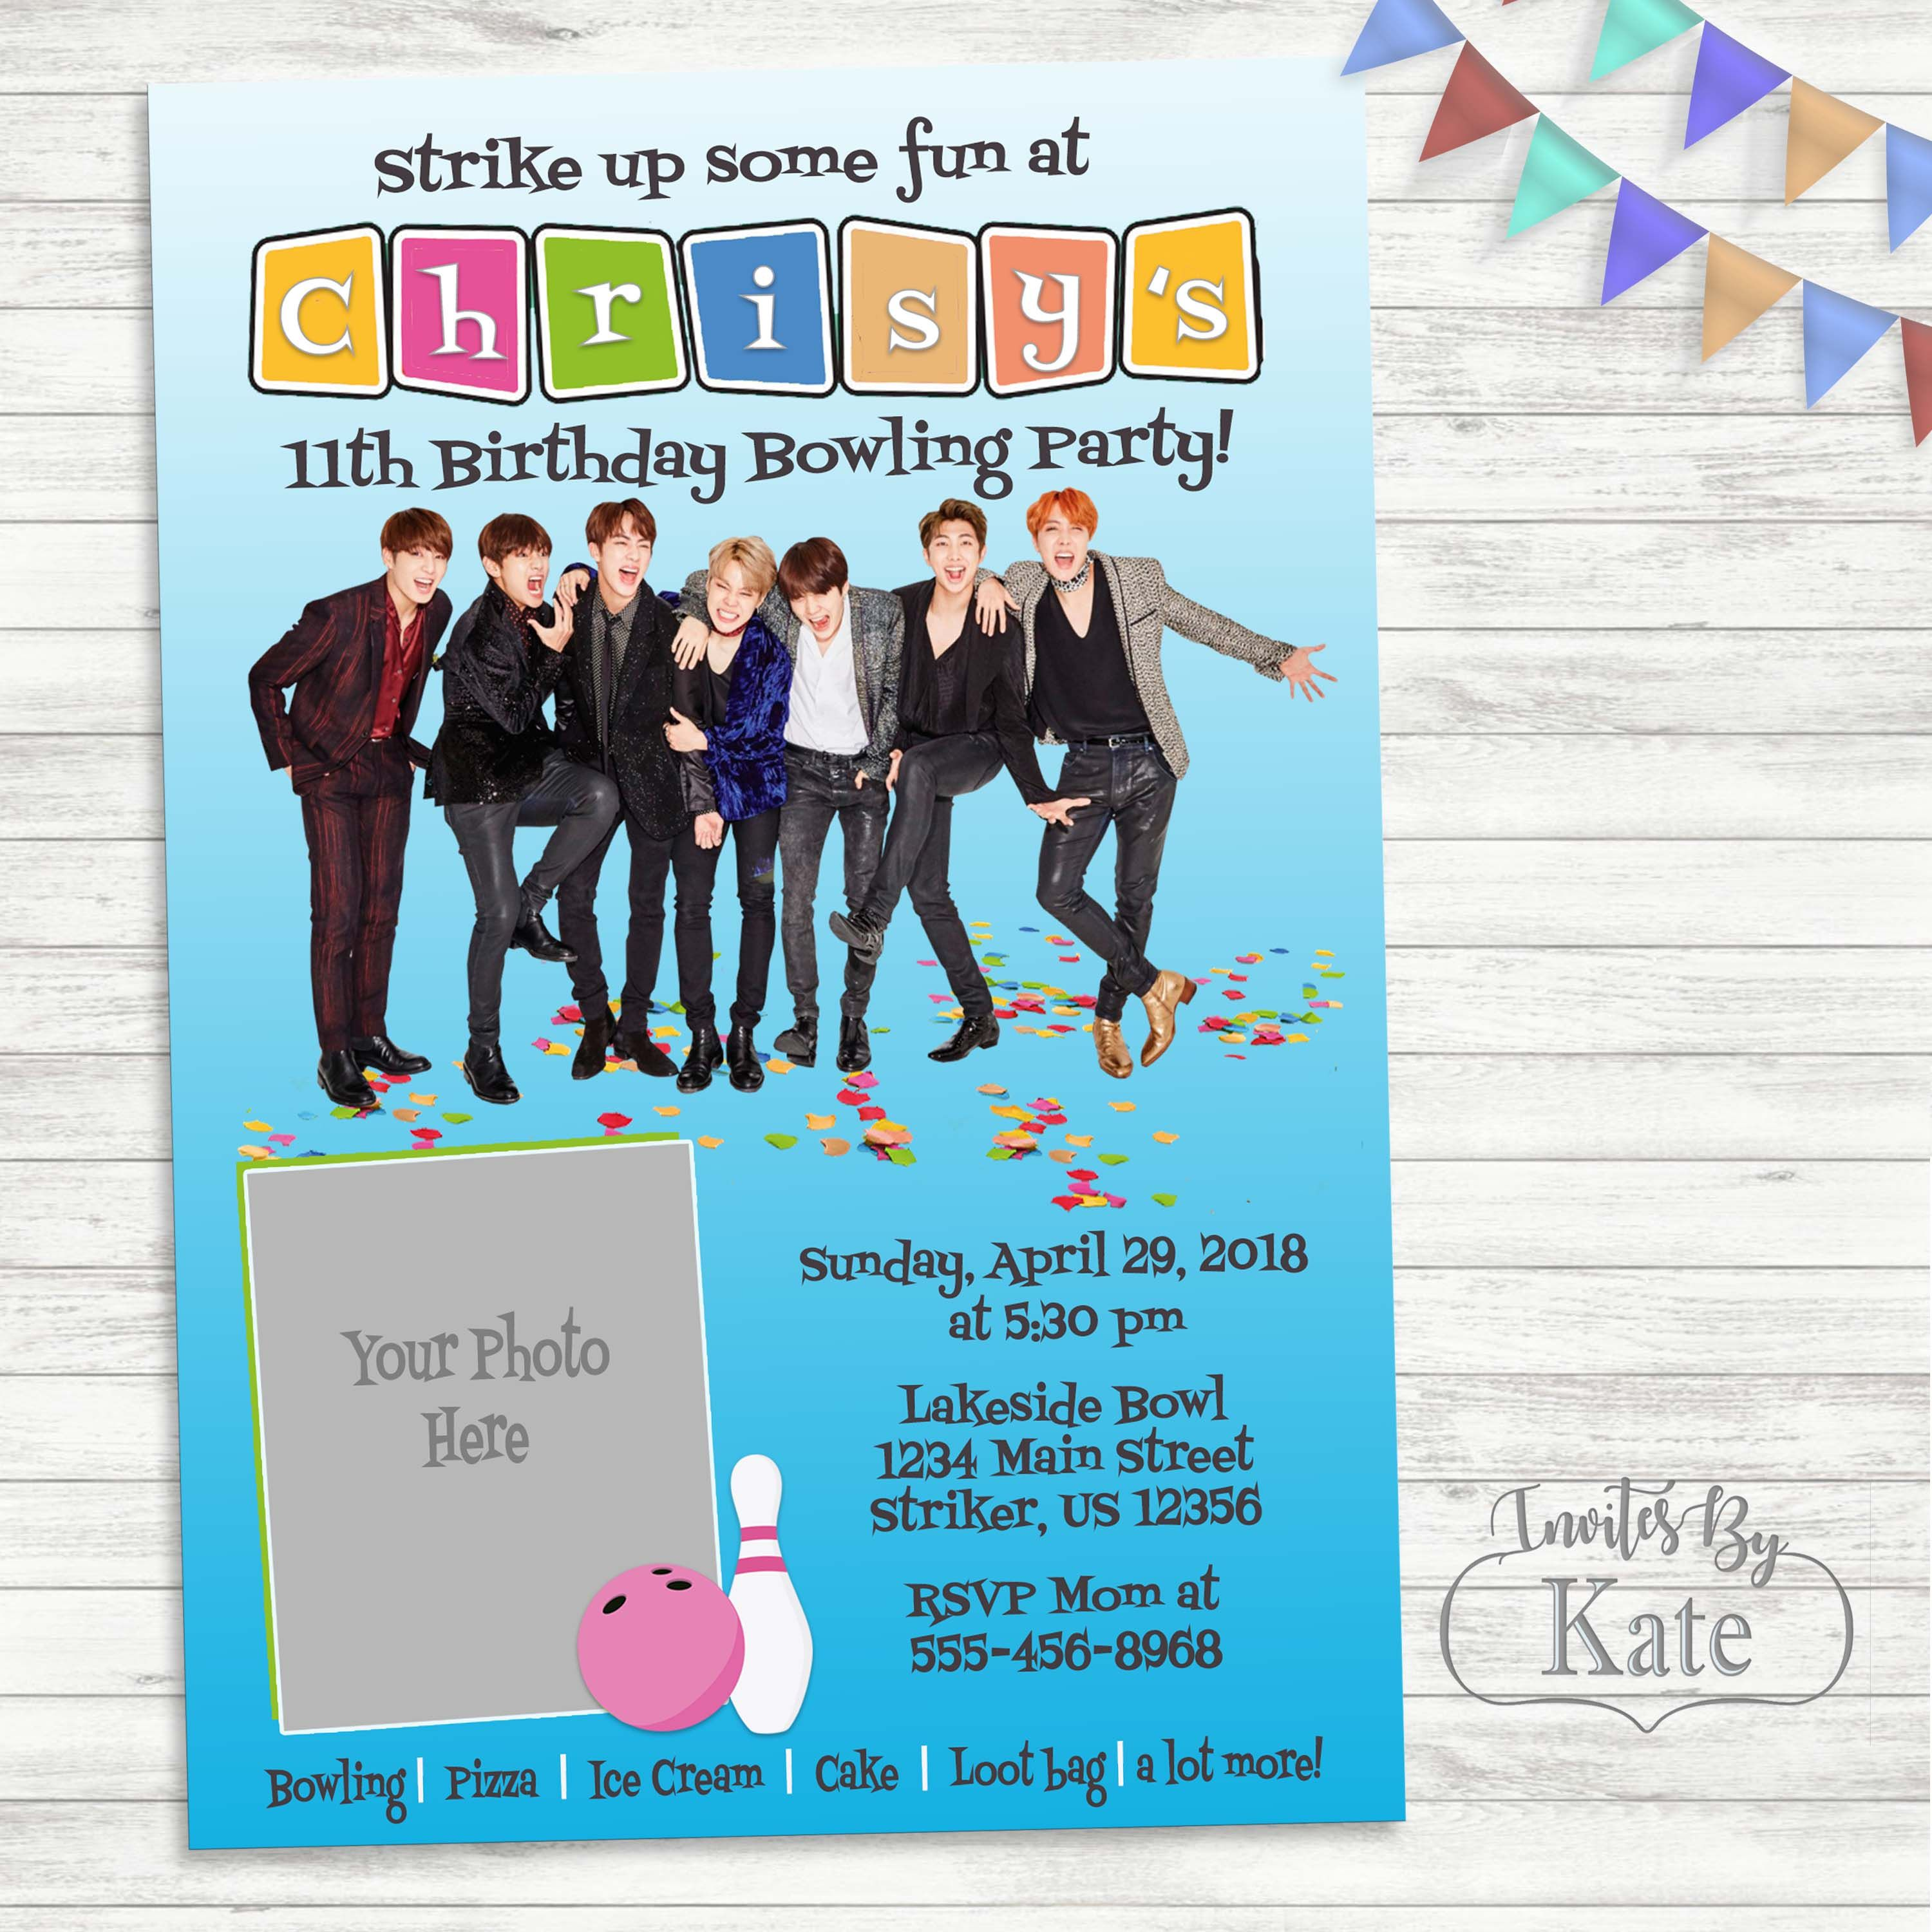 Bts K Pop Confetti Party Birthday Photo Invitation Personalized For You Then Sent Rig Birthday Invitations Photo Birthday Invitations Invitation Card Printing